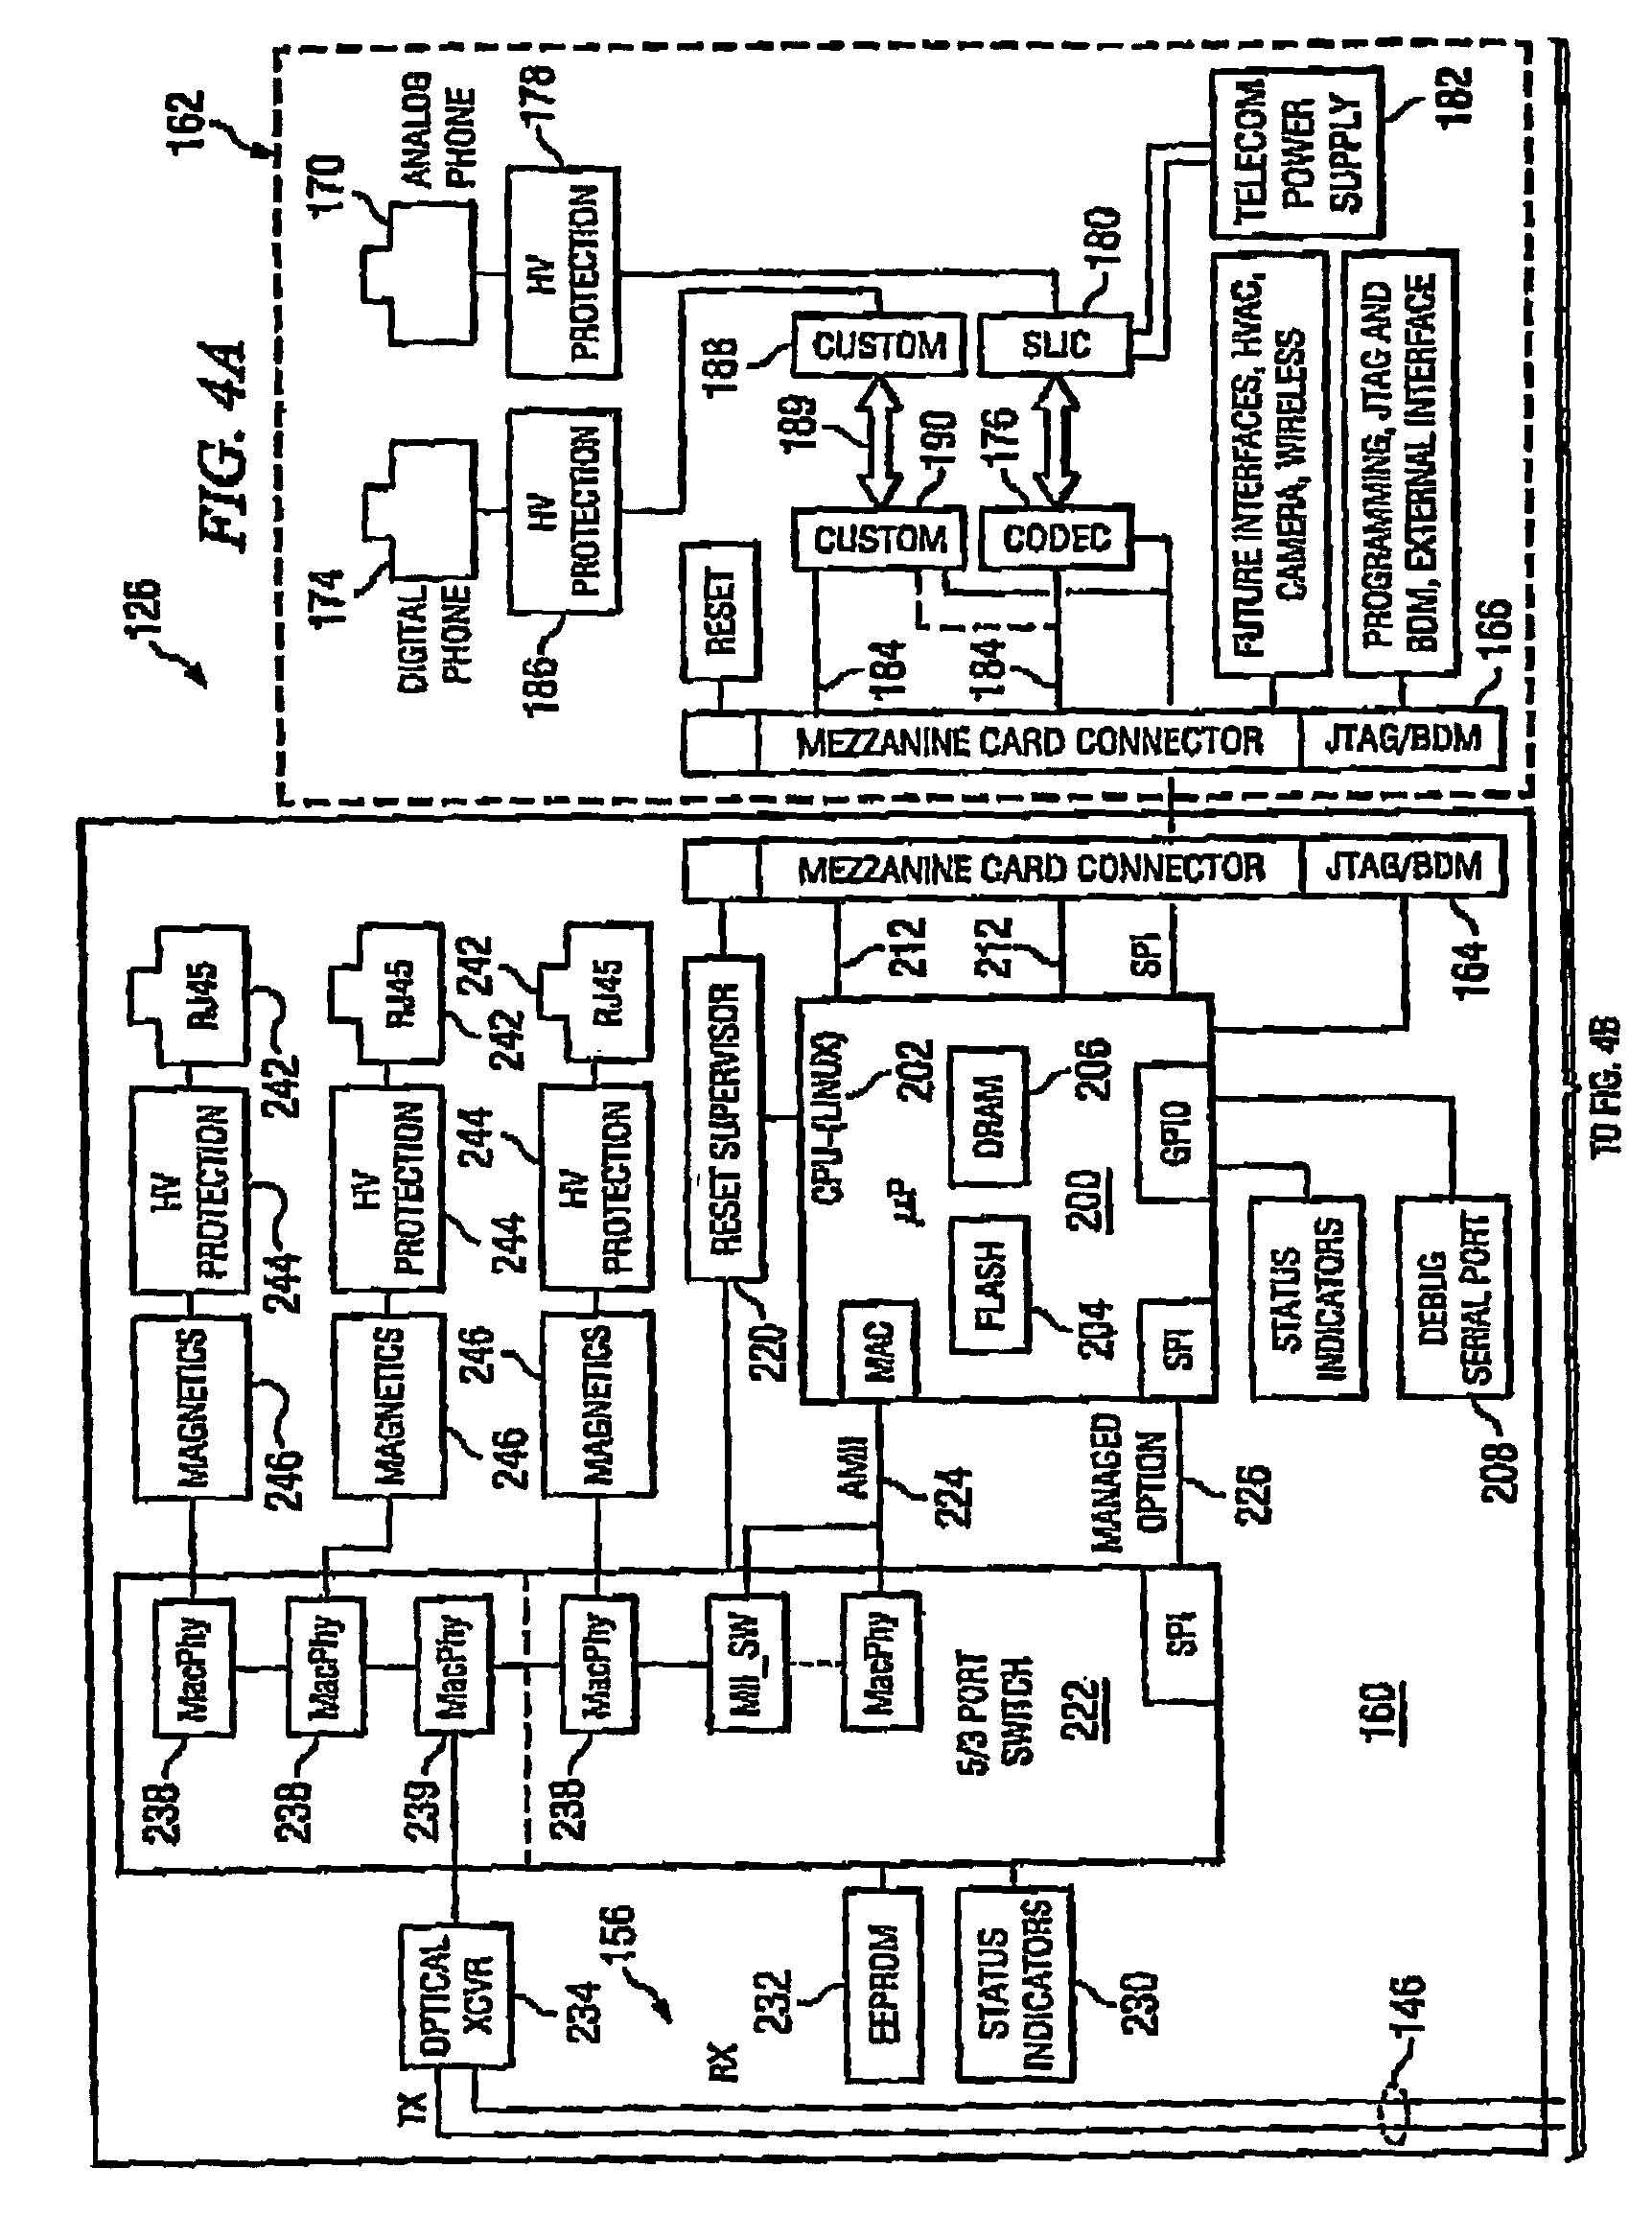 Dsl Telephone Wiring Diagram moreover Rj45 To 110 Block Wiring Diagram as well Rs232 Wiring Diagram Female To besides Using Cat5 Rj11 Jack Wiring Diagram in addition Rj45 To Db9 Adapter Wiring Diagram. on cat5 to rj11 adapter wiring diagram